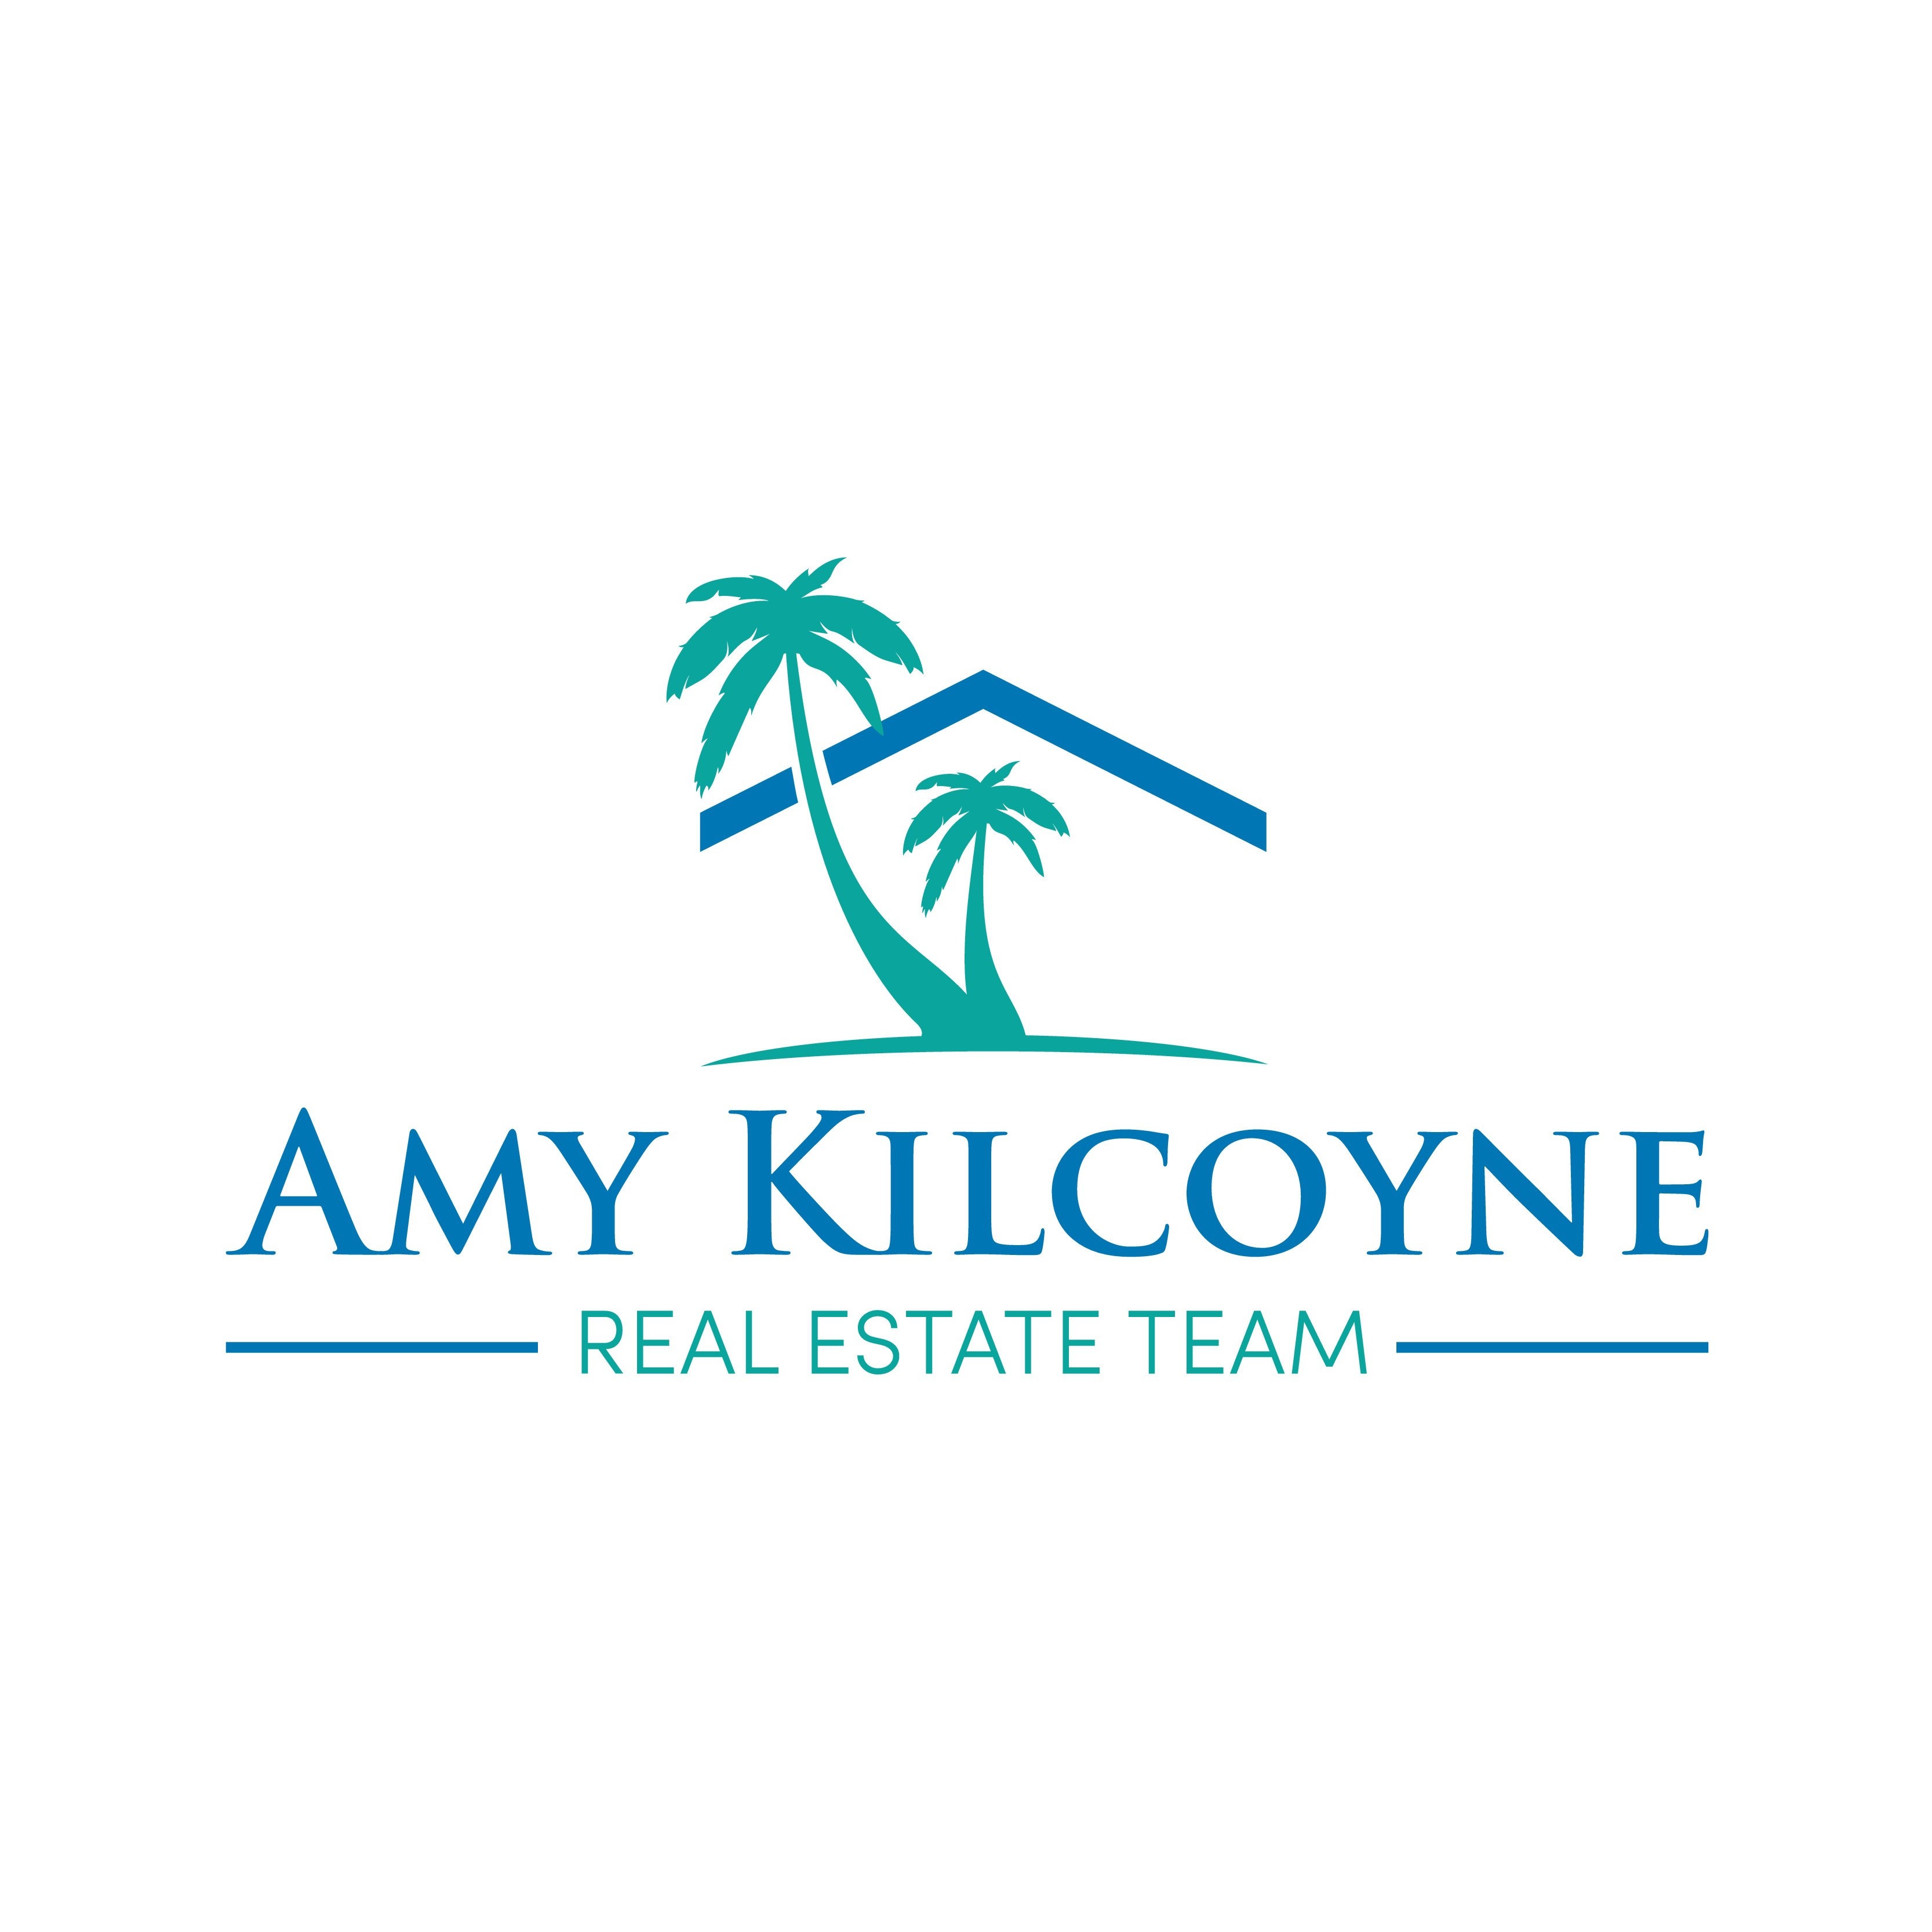 Create a capturing image for a top real estate team in South Florida.